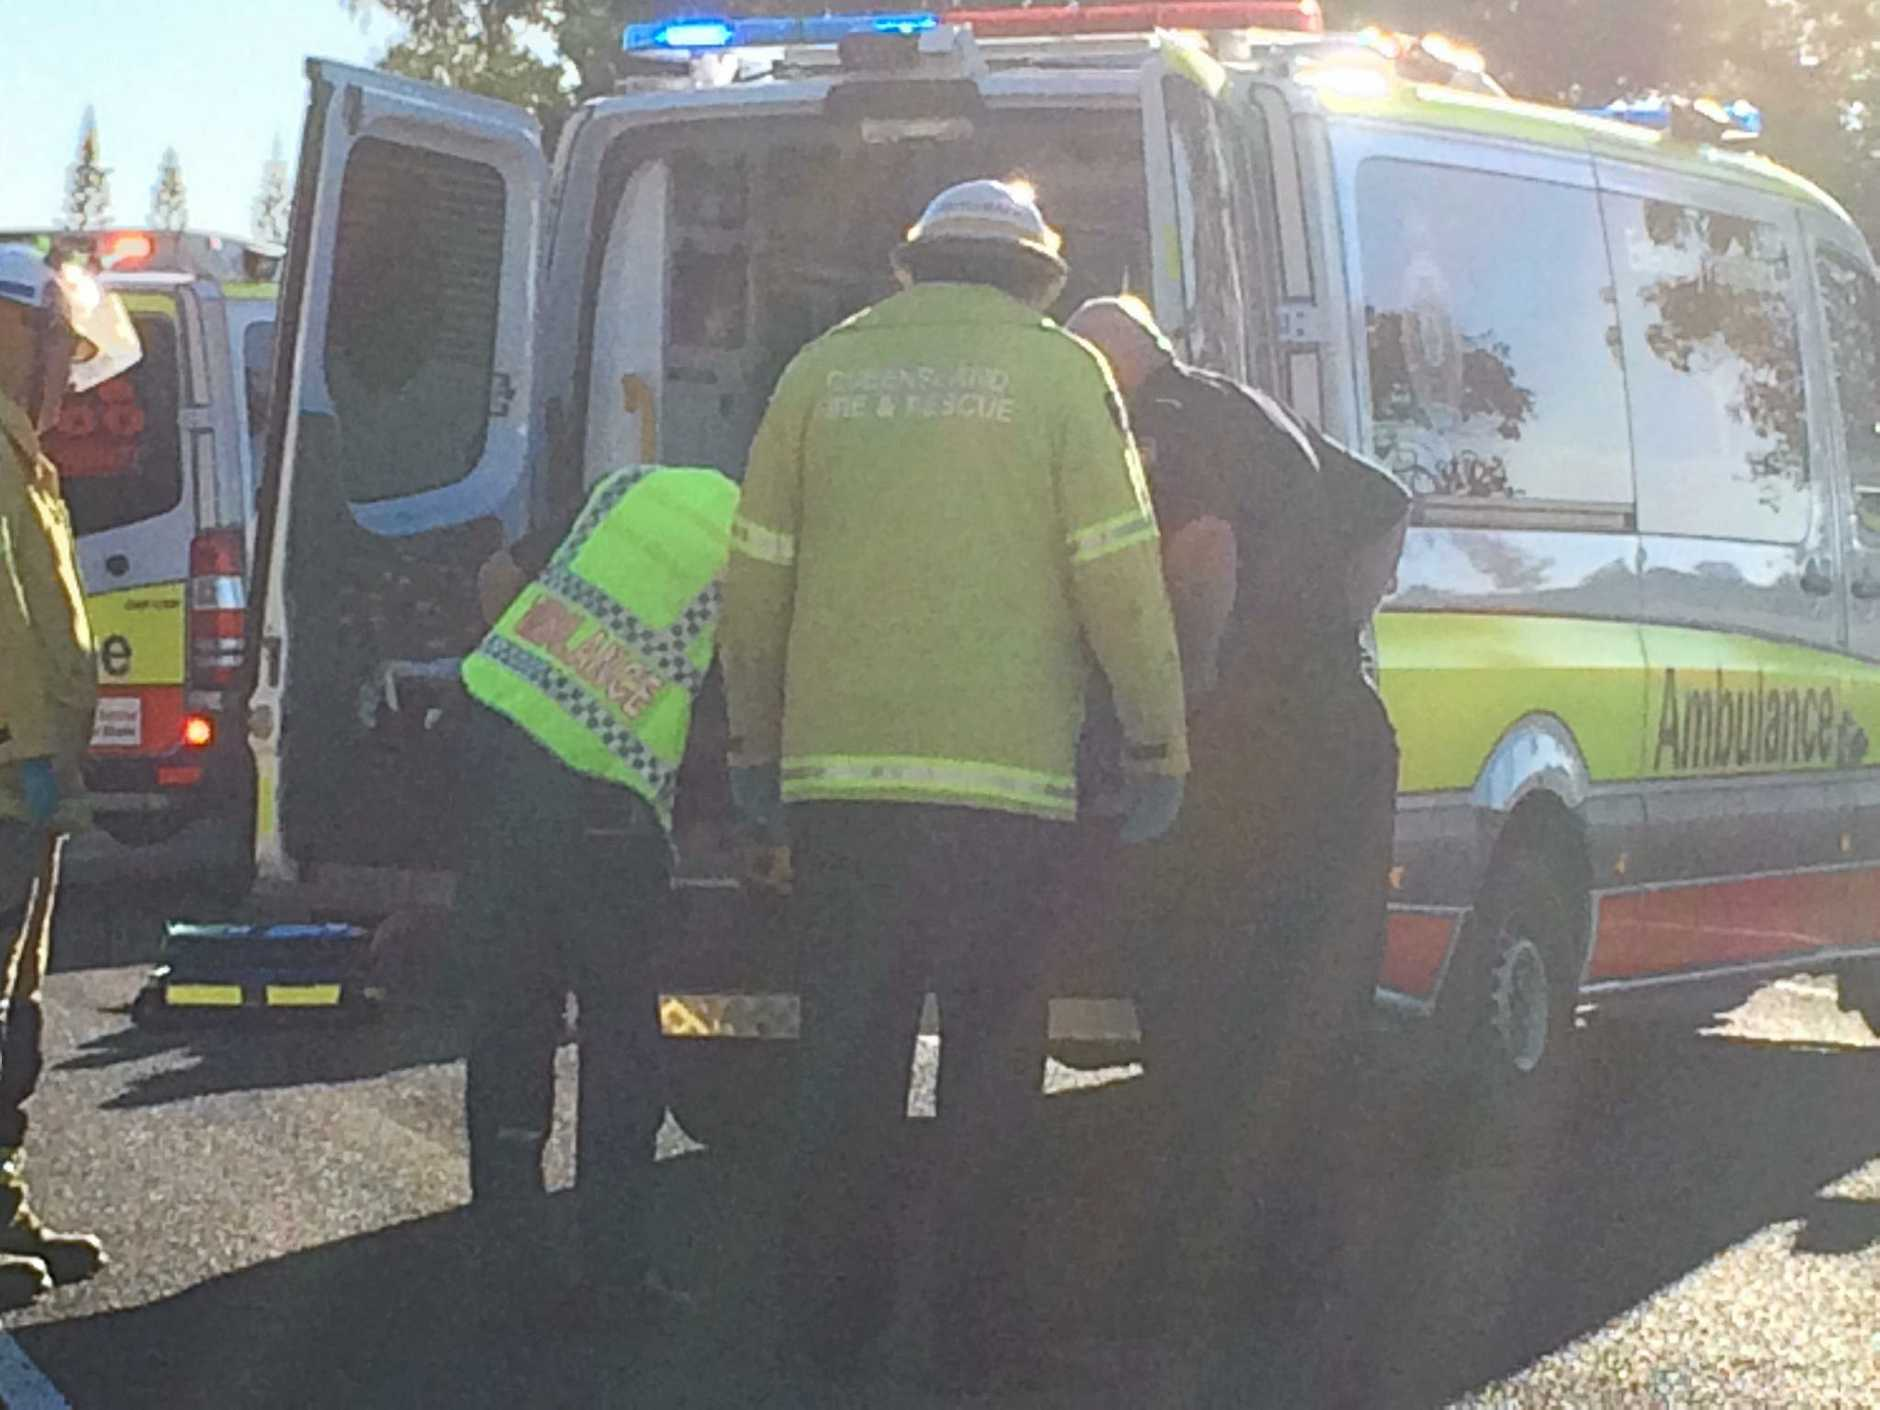 Motorbike rider and kangaroo collide on Barthodt Dr at Branyan. Photo Contributed